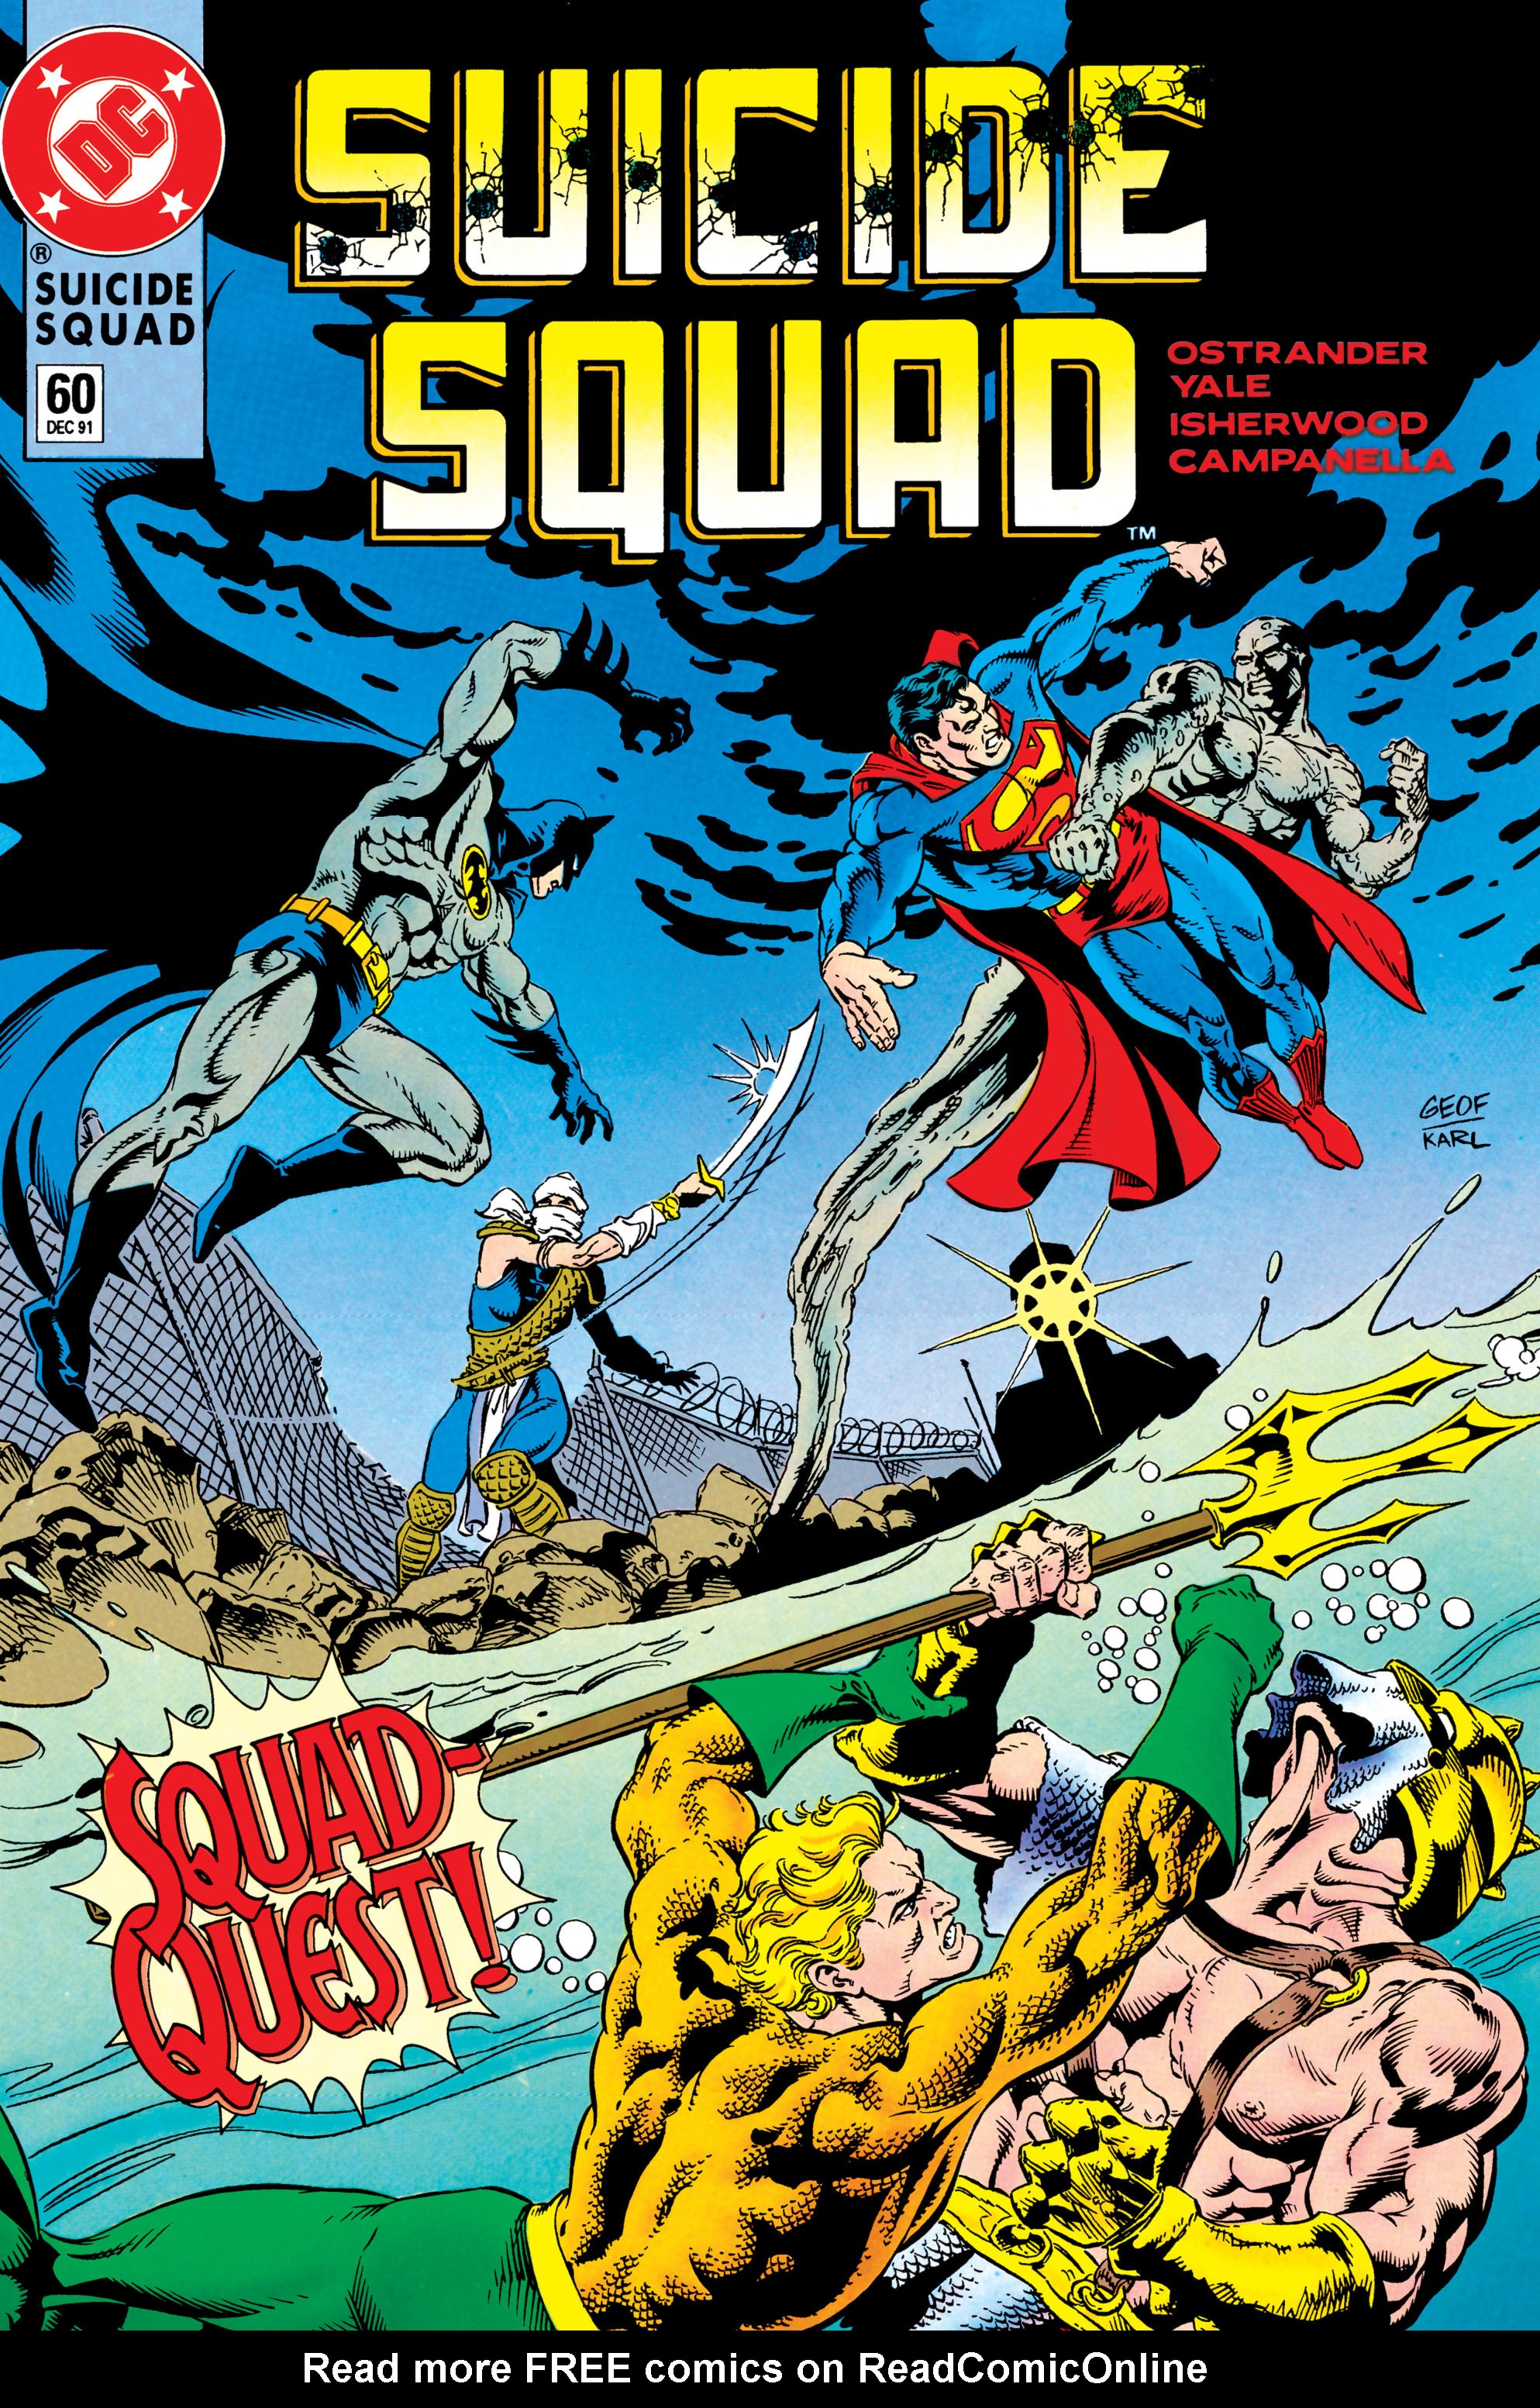 Suicide Squad (1987) issue 60 - Page 1